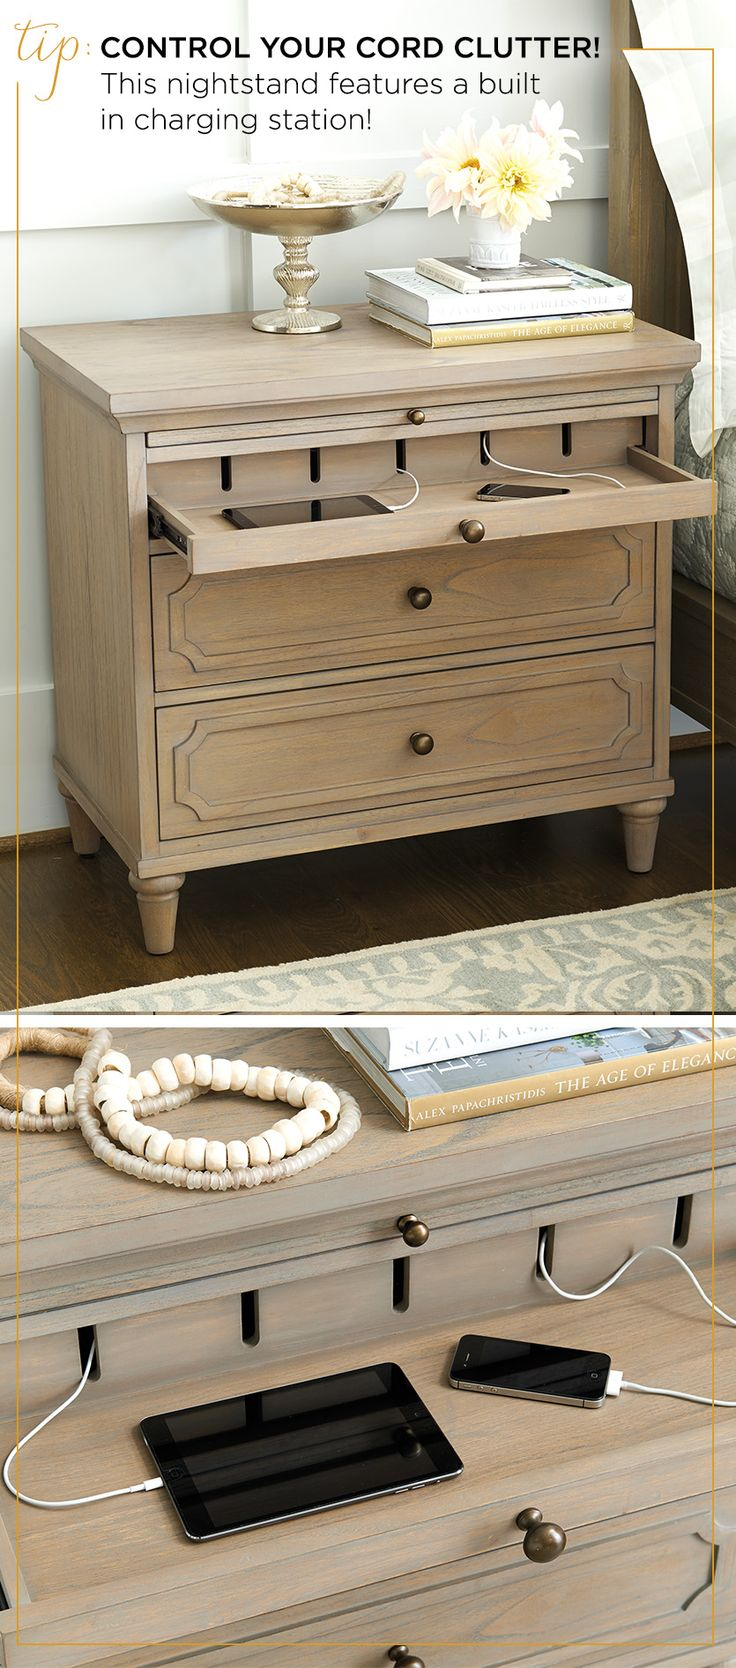 Best 25 charger organization ideas on pinterest phone - Best way to organize bedroom furniture ...